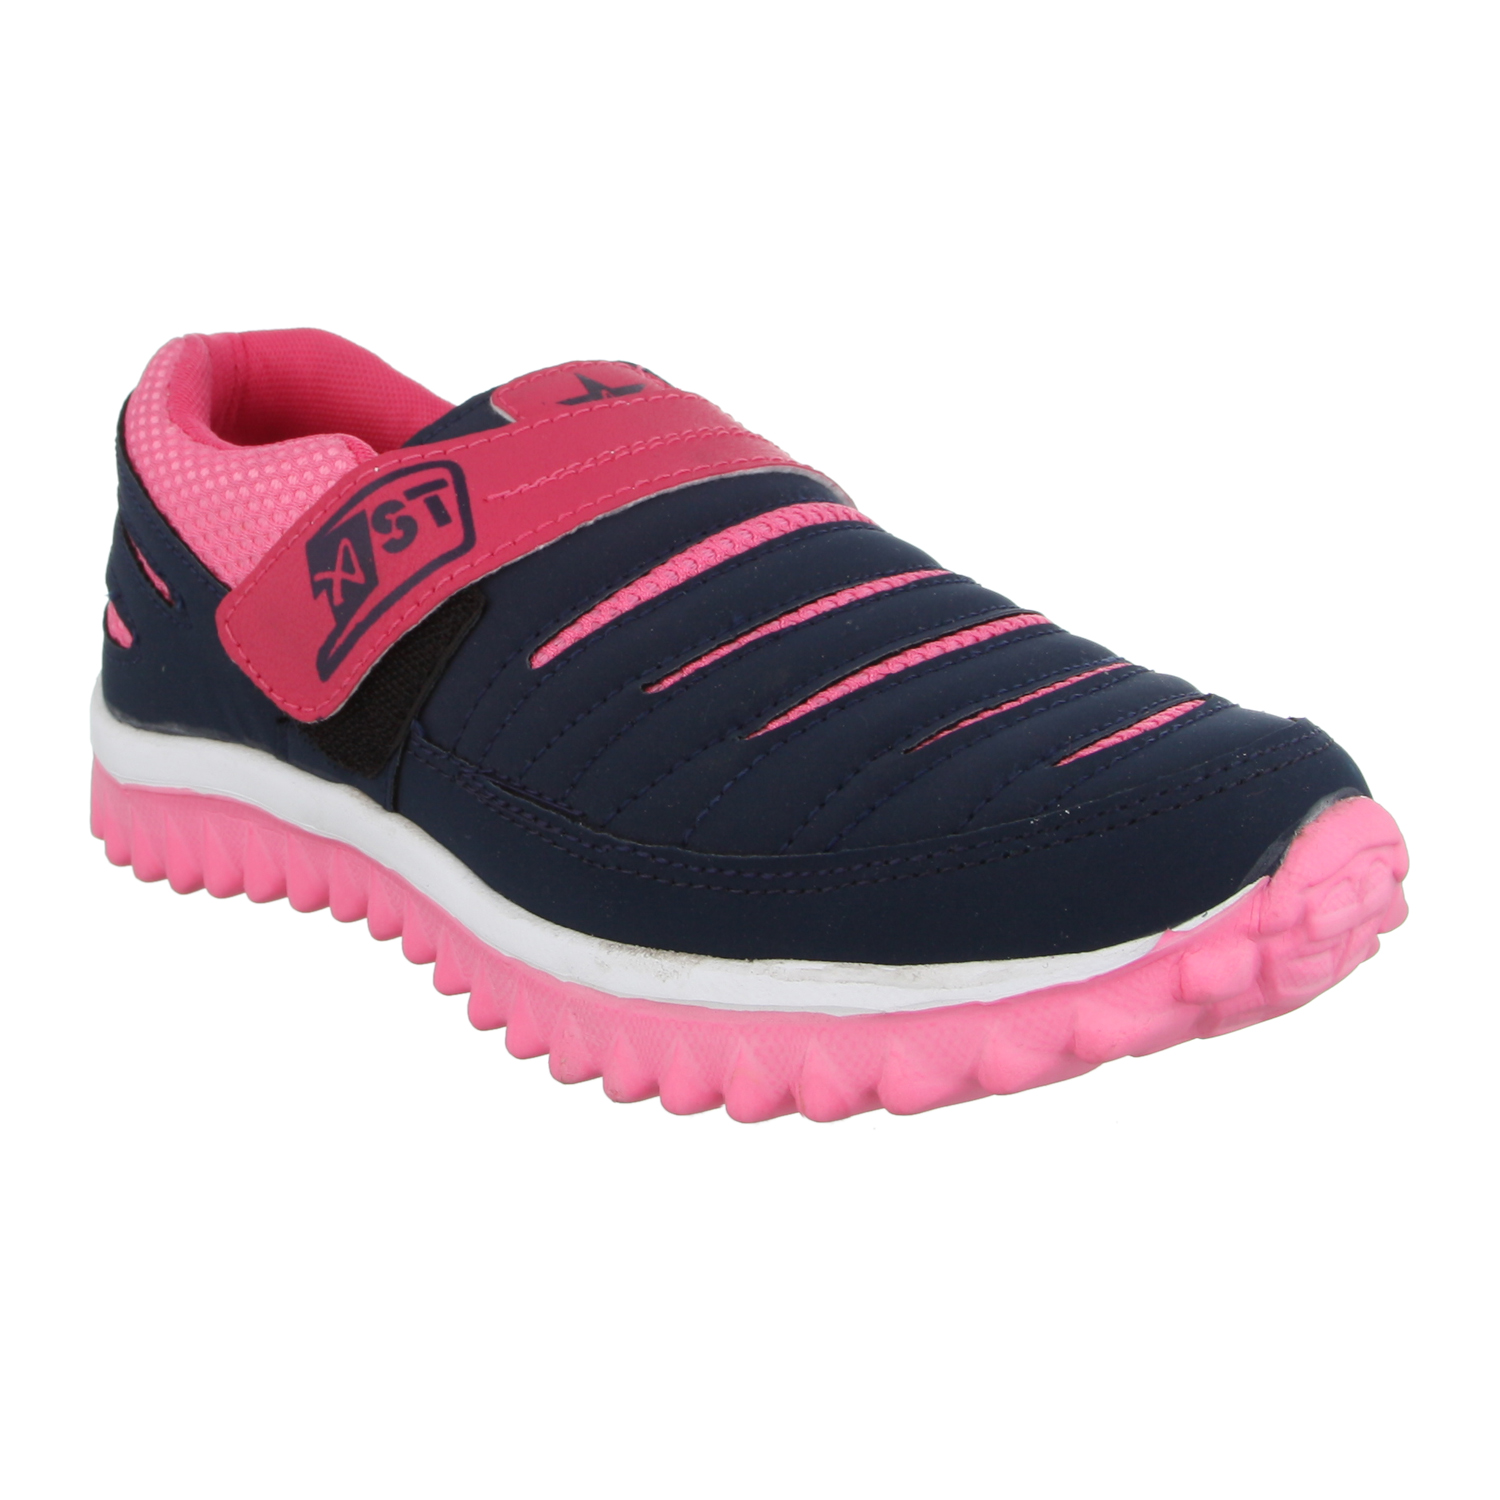 delhibazzar2 A Star Lds-011 Running Shoes For Women  (multicolor)